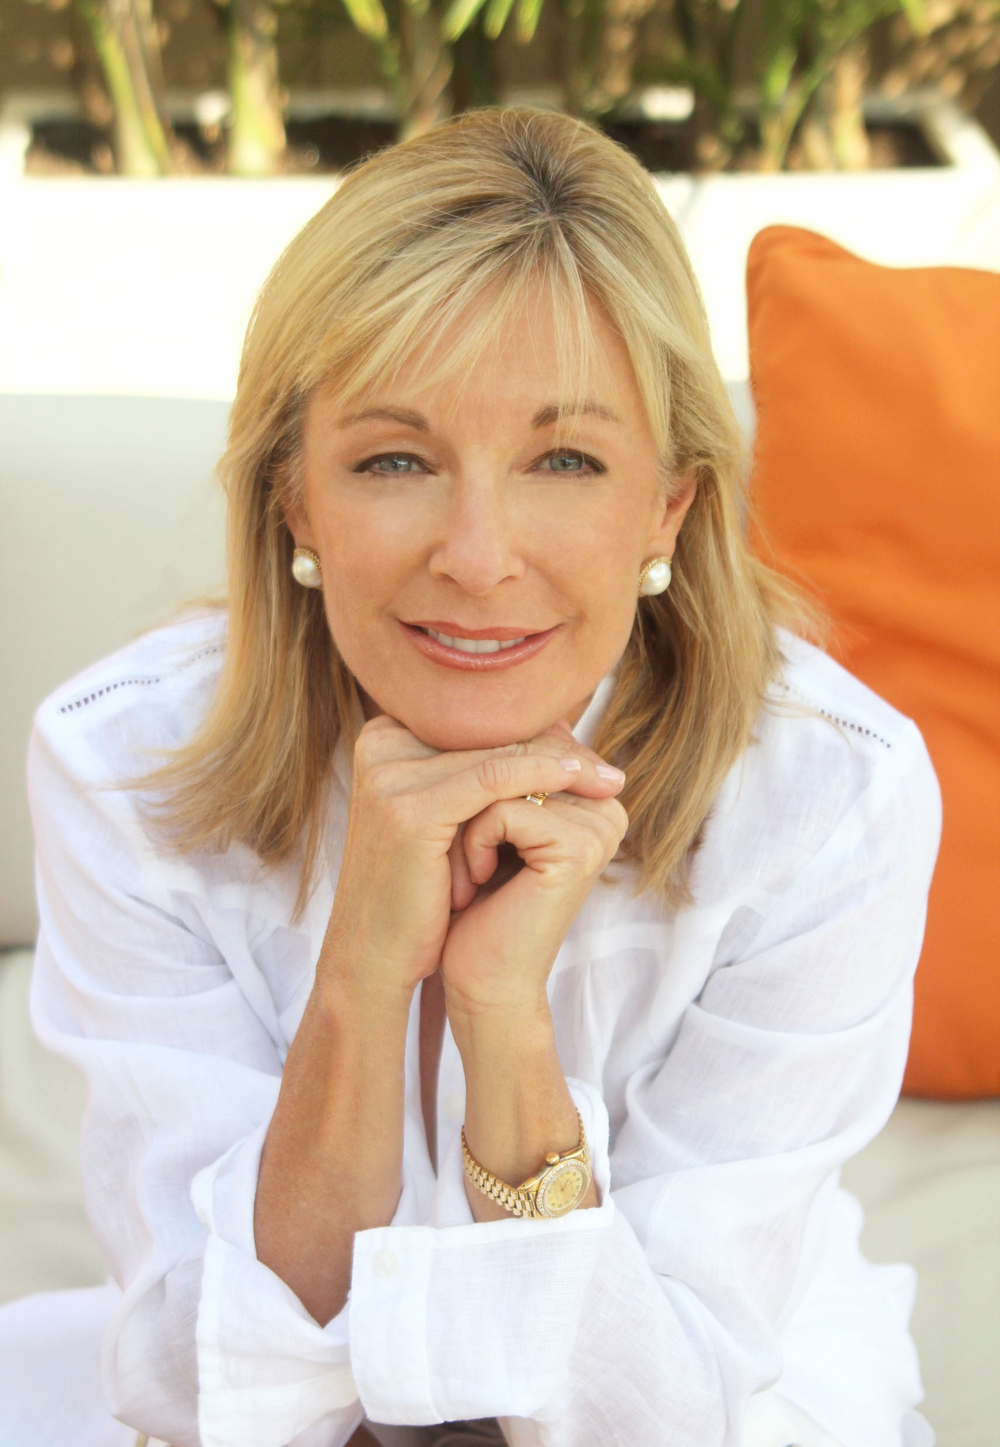 Susie Ellis, Chairman and CEO, Global Wellness Institute